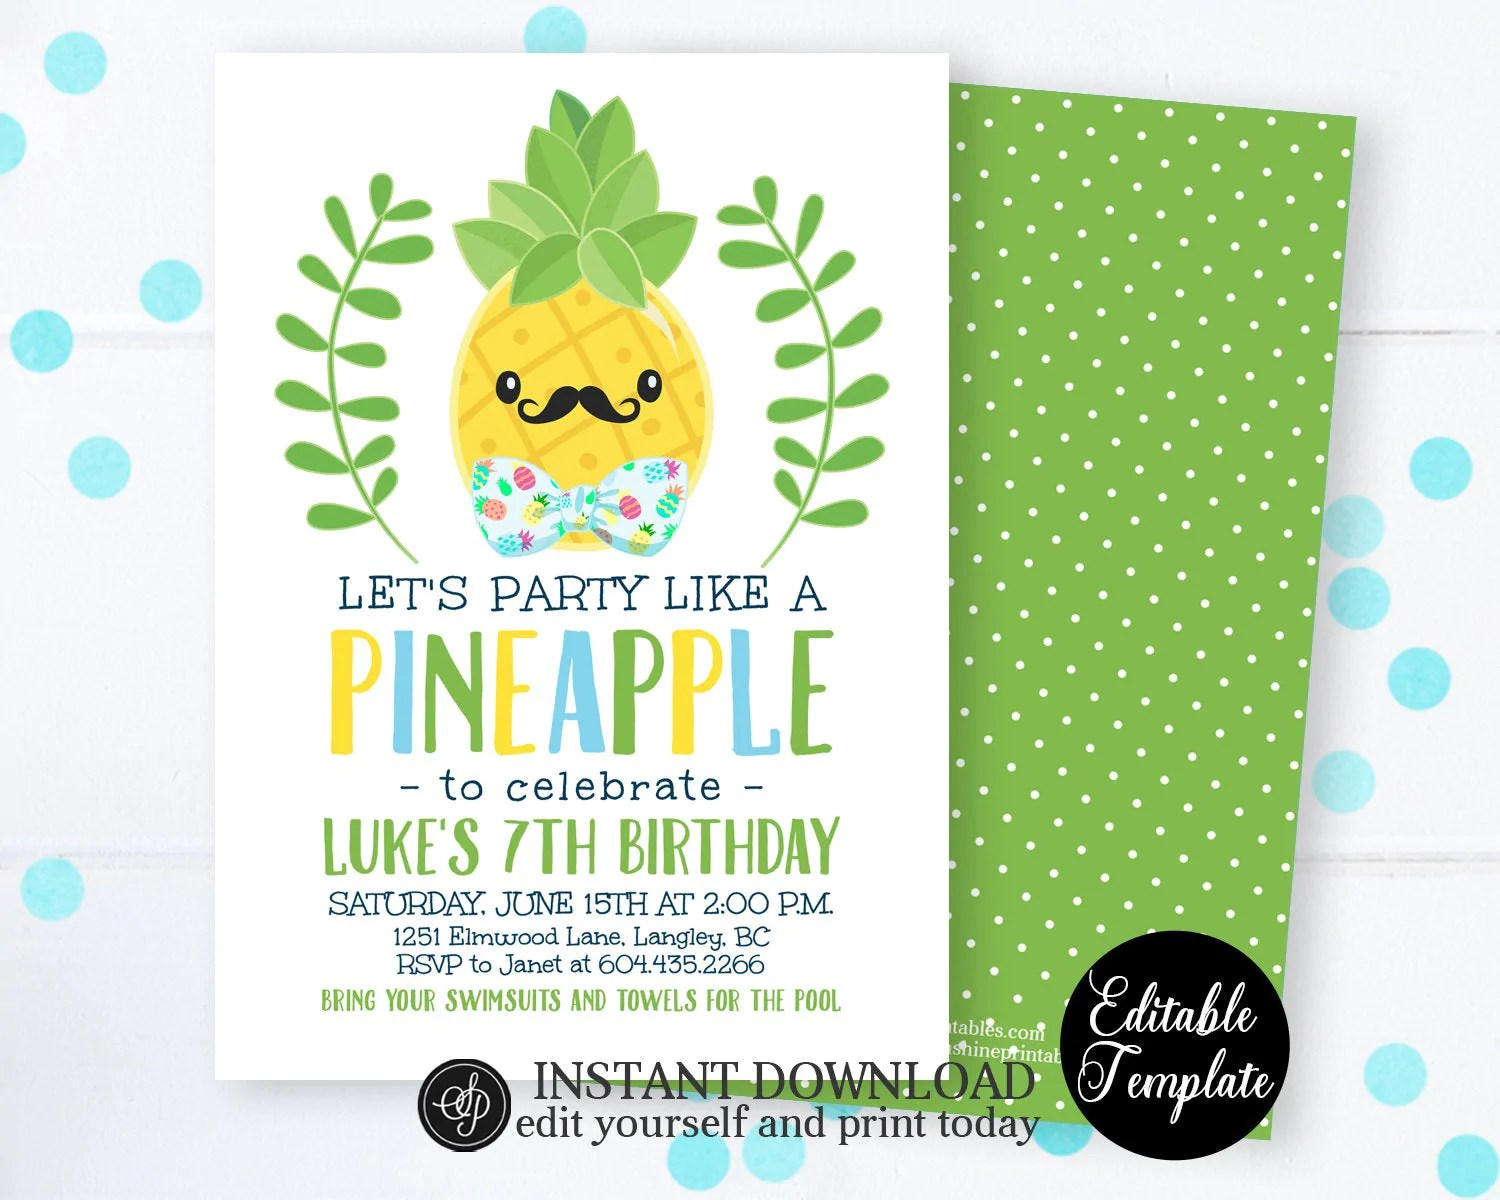 let s party like a pineapple invitation boy pineapple birthday invitation summer birthday invite printable editable template sp0042